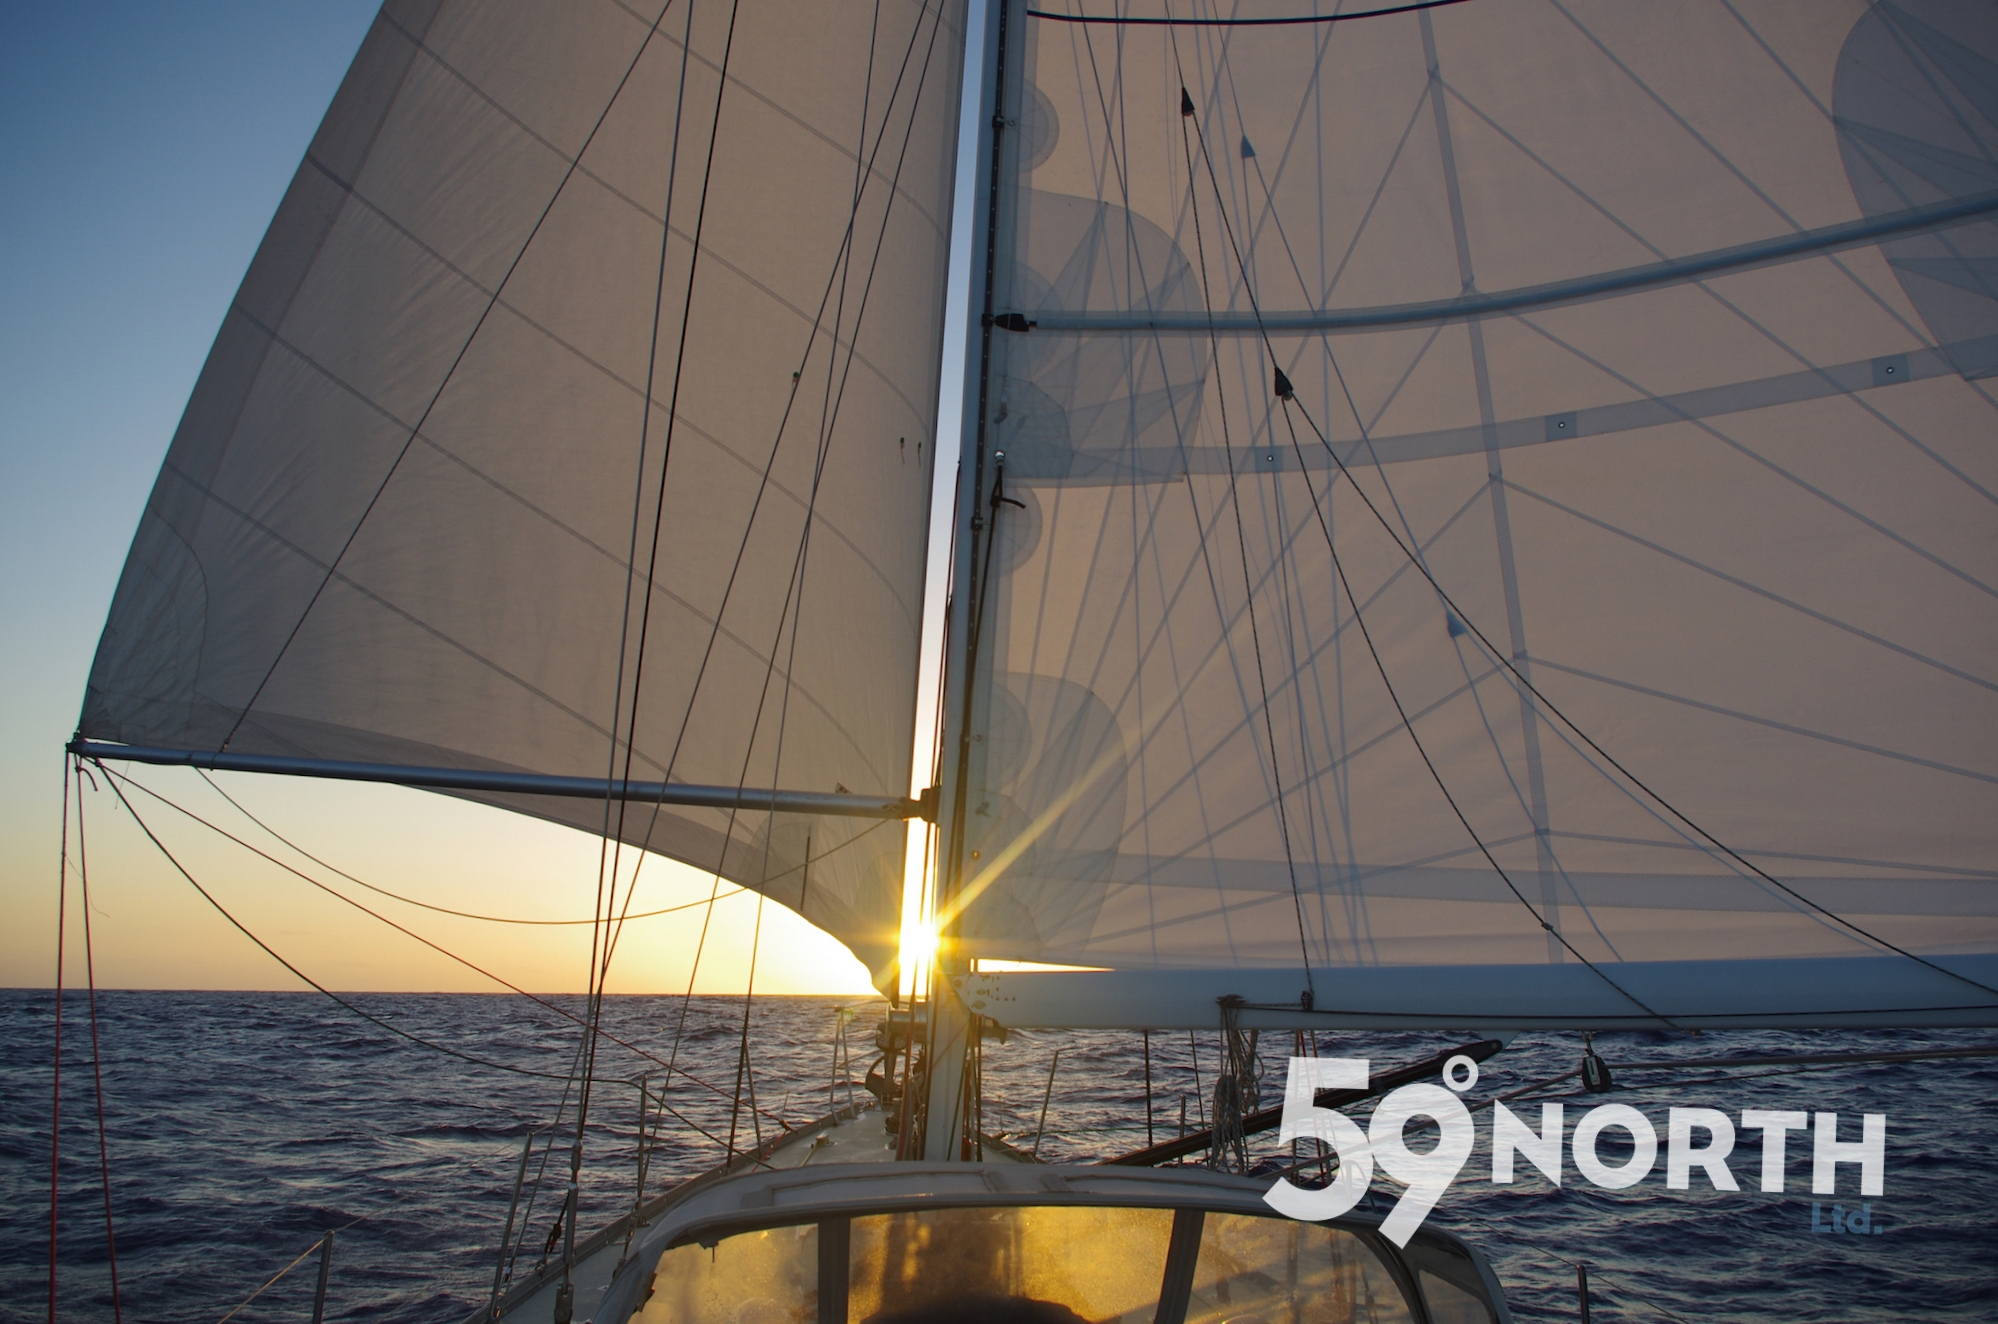 Amazing sail from Puerto Rico to Cuba, 7 days of mostly downwind sailing! April 2016